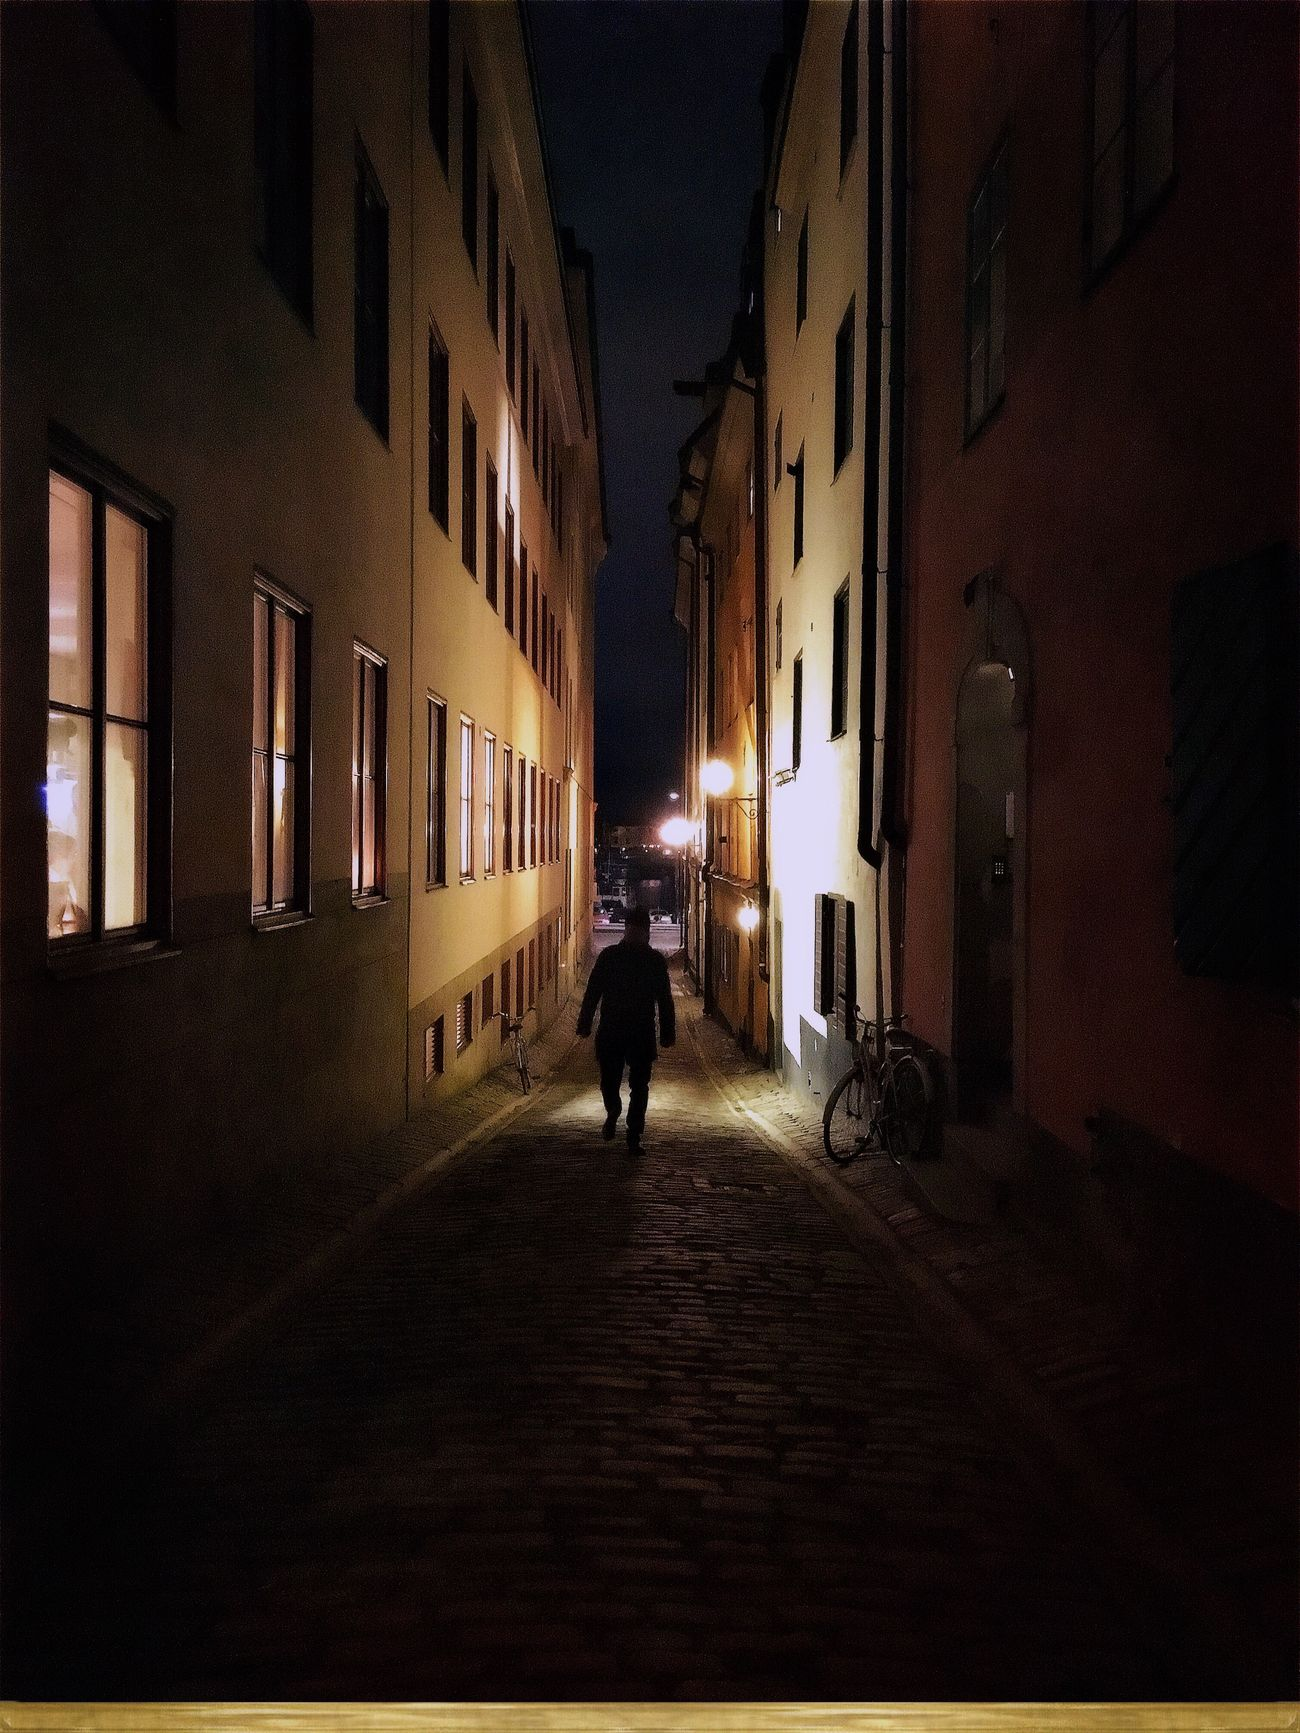 A Winter Night On The Streets Of Stockholm Architecture Walking My Own Style Of Beauty Man Shootermag Eyeem In Stockholm Outdoors Hipstography EyeEm Traveling ShotoniPhone6s Visual Witness Silhouette Night Night Lights Nightphotography Stockholm Light And Shadow Lines